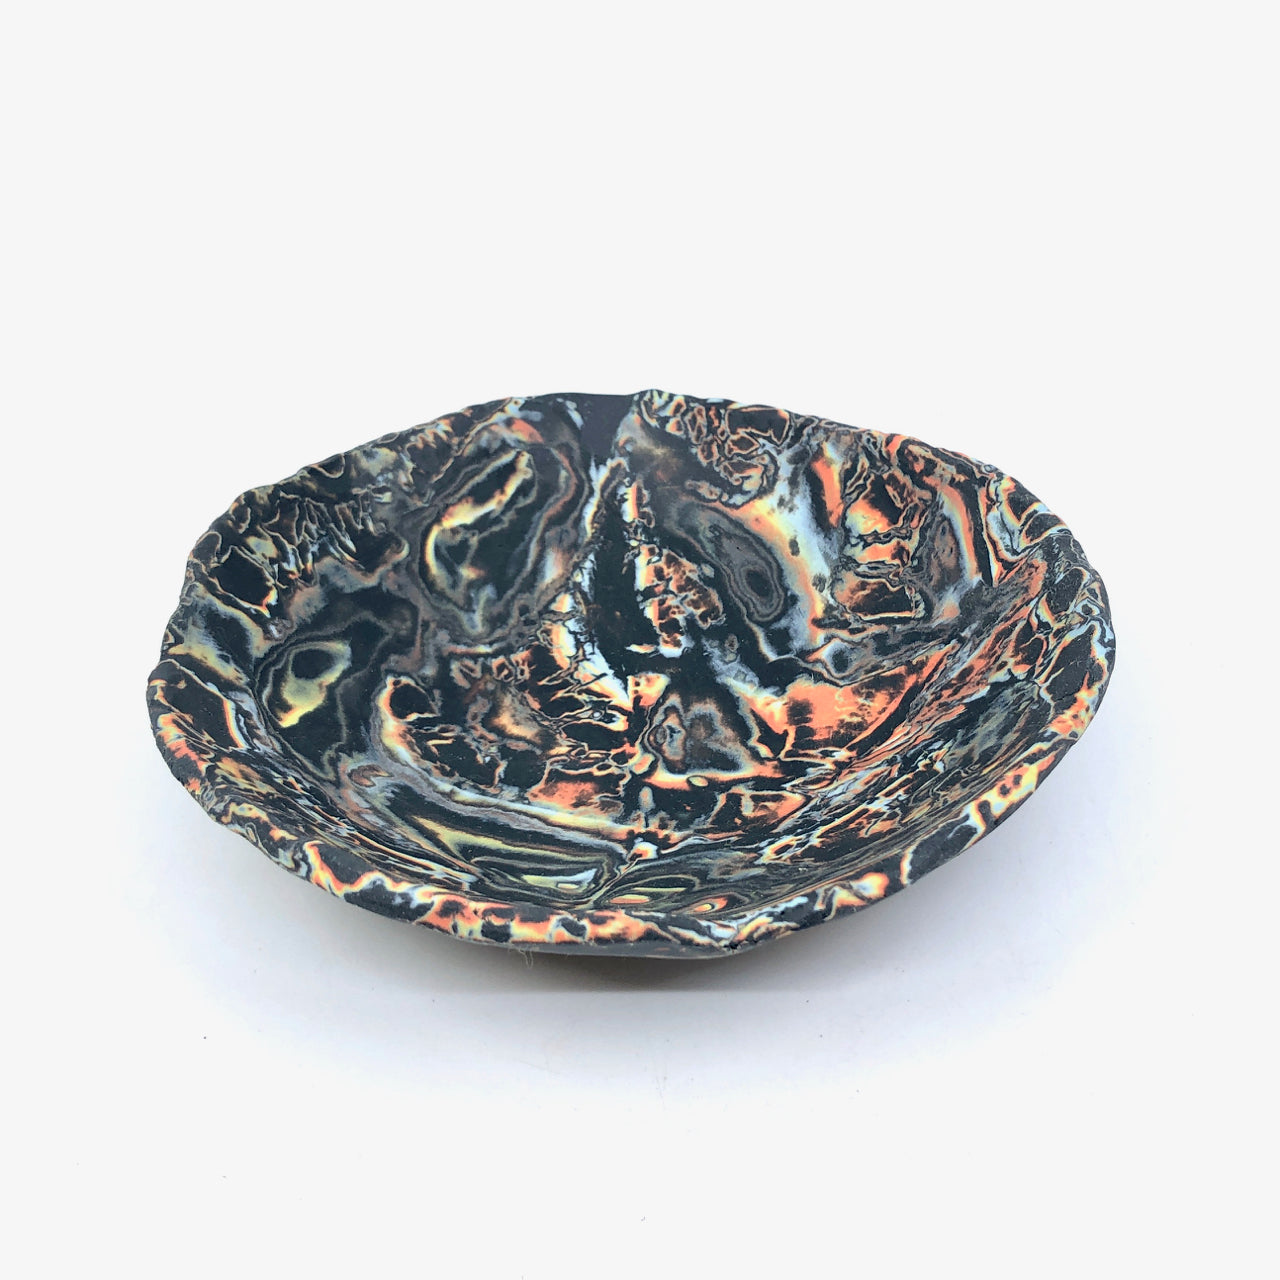 Small Black & Neon Squiggle Marbled Display Bowl